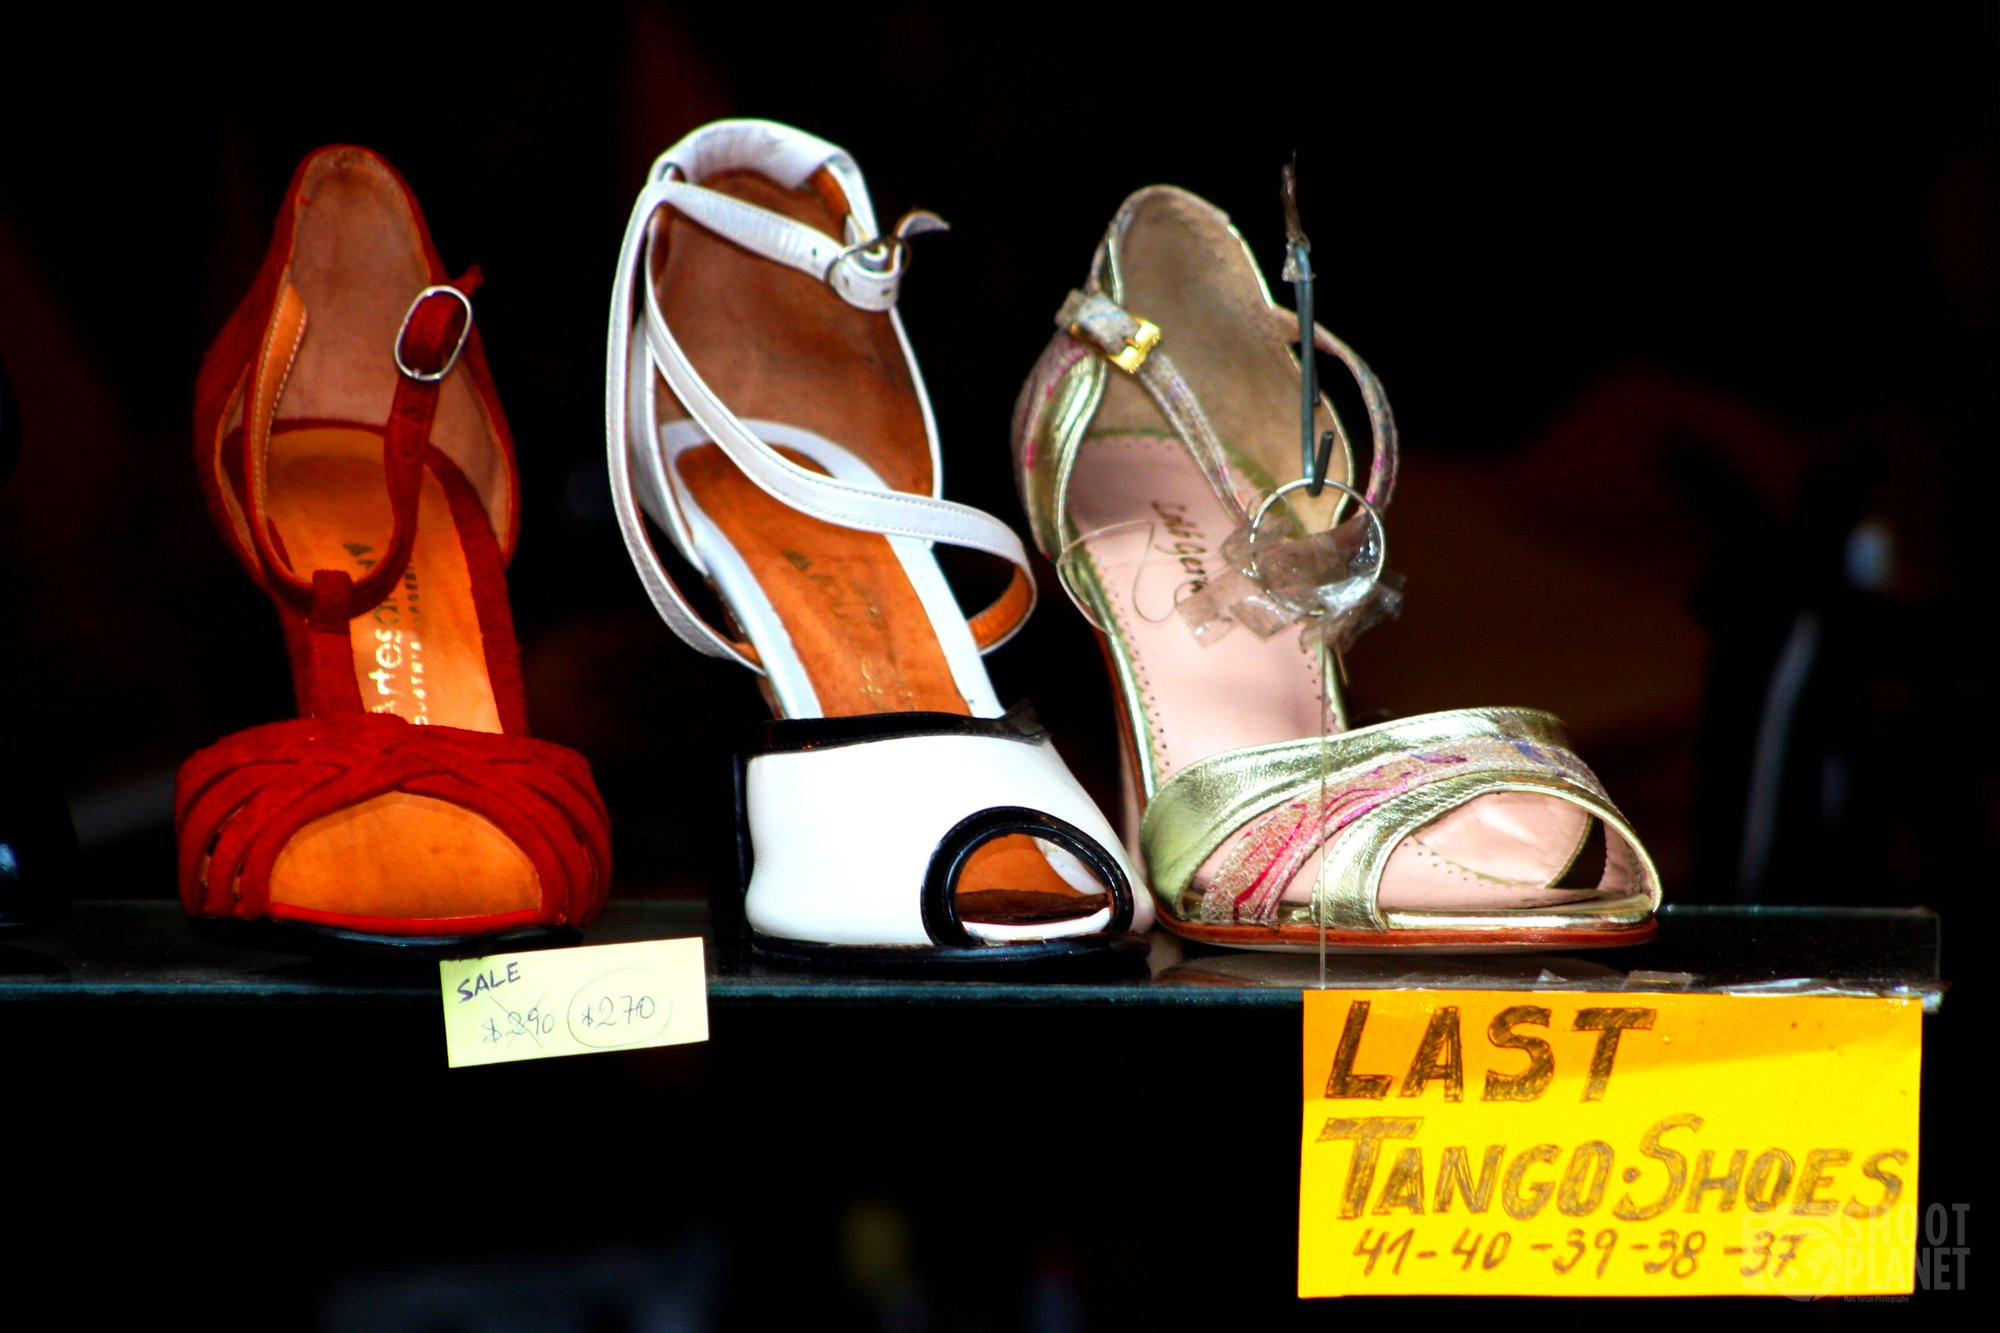 Tango shoes sale in Buenos Aires, Argentina